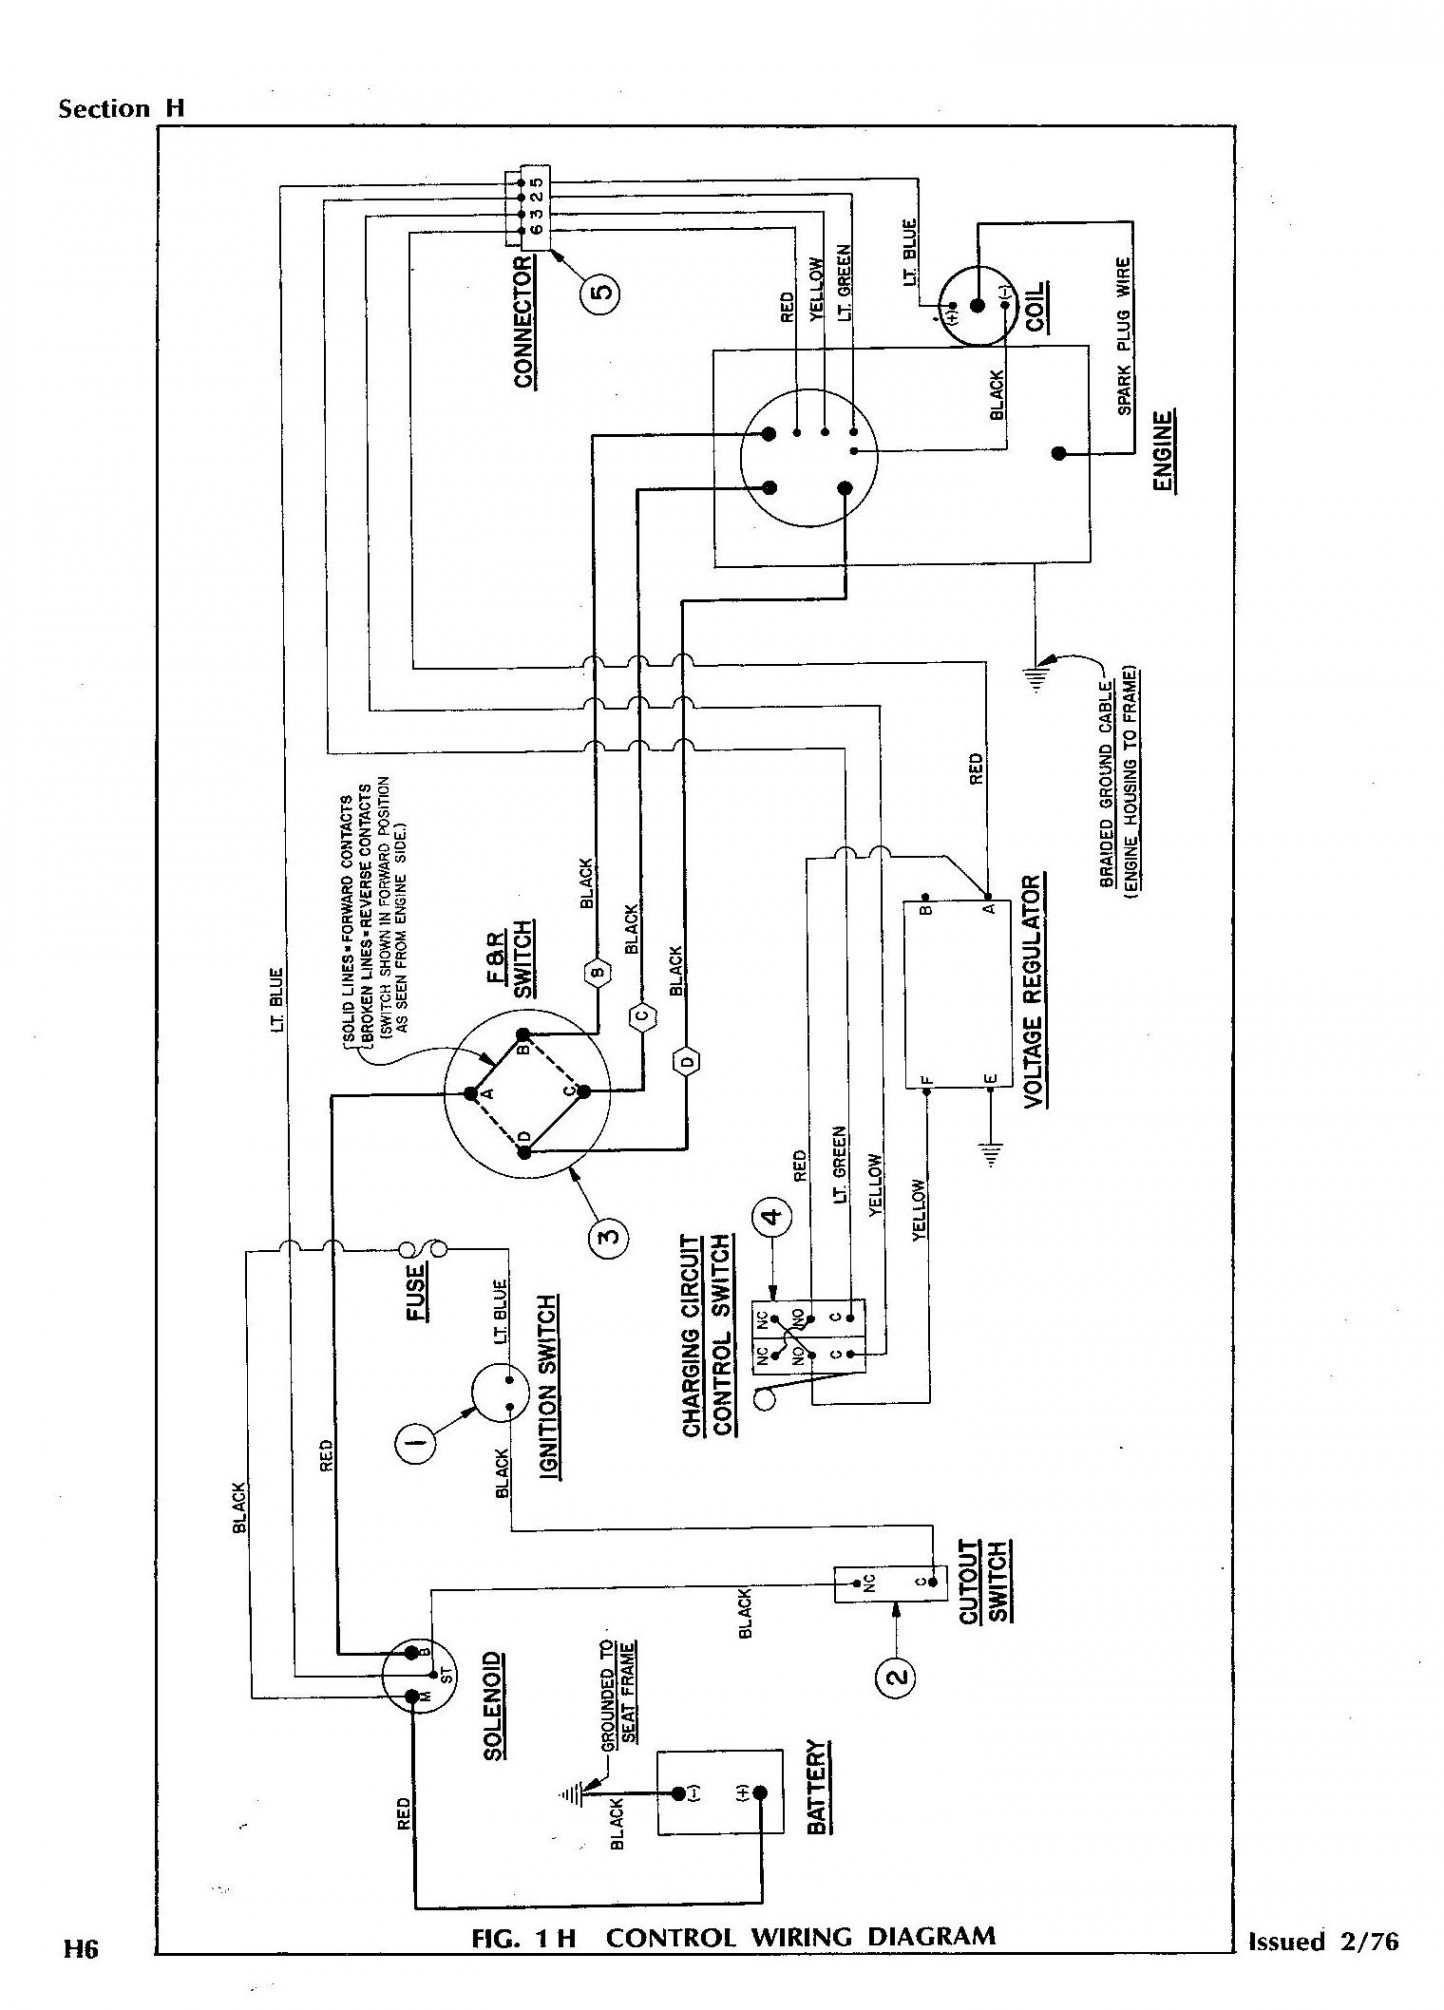 1999 yamaha g16 gas wiring diagram 2005 ez go wiring diagram wiring diagram e11  2005 ez go wiring diagram wiring